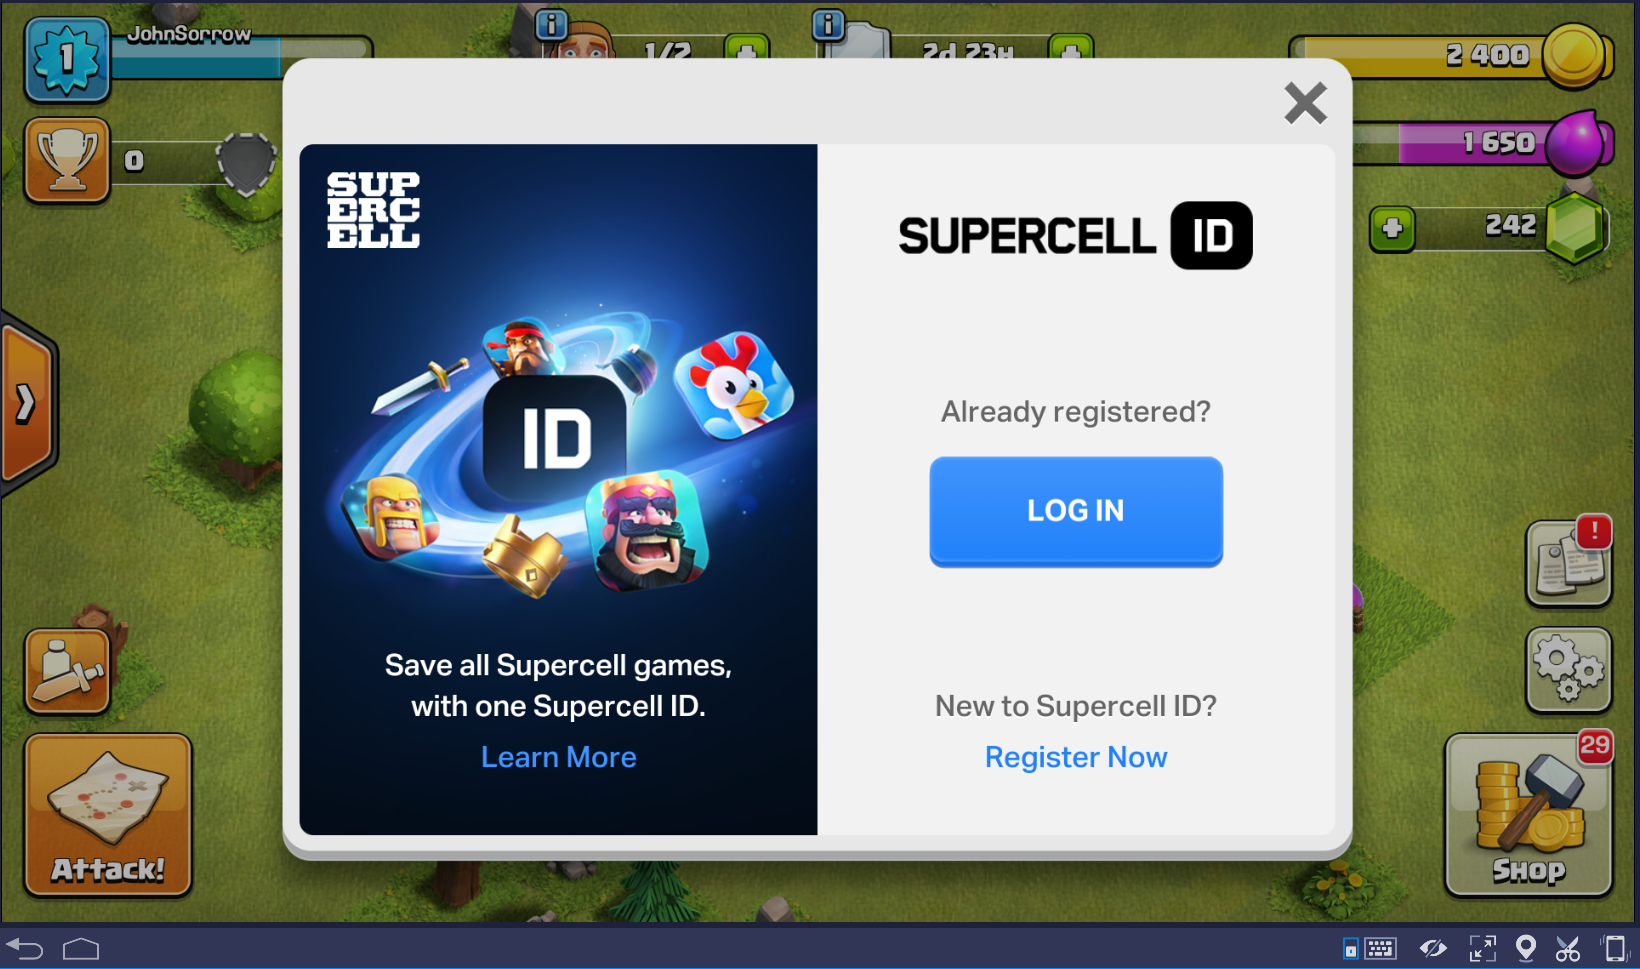 Log In Supercell ID